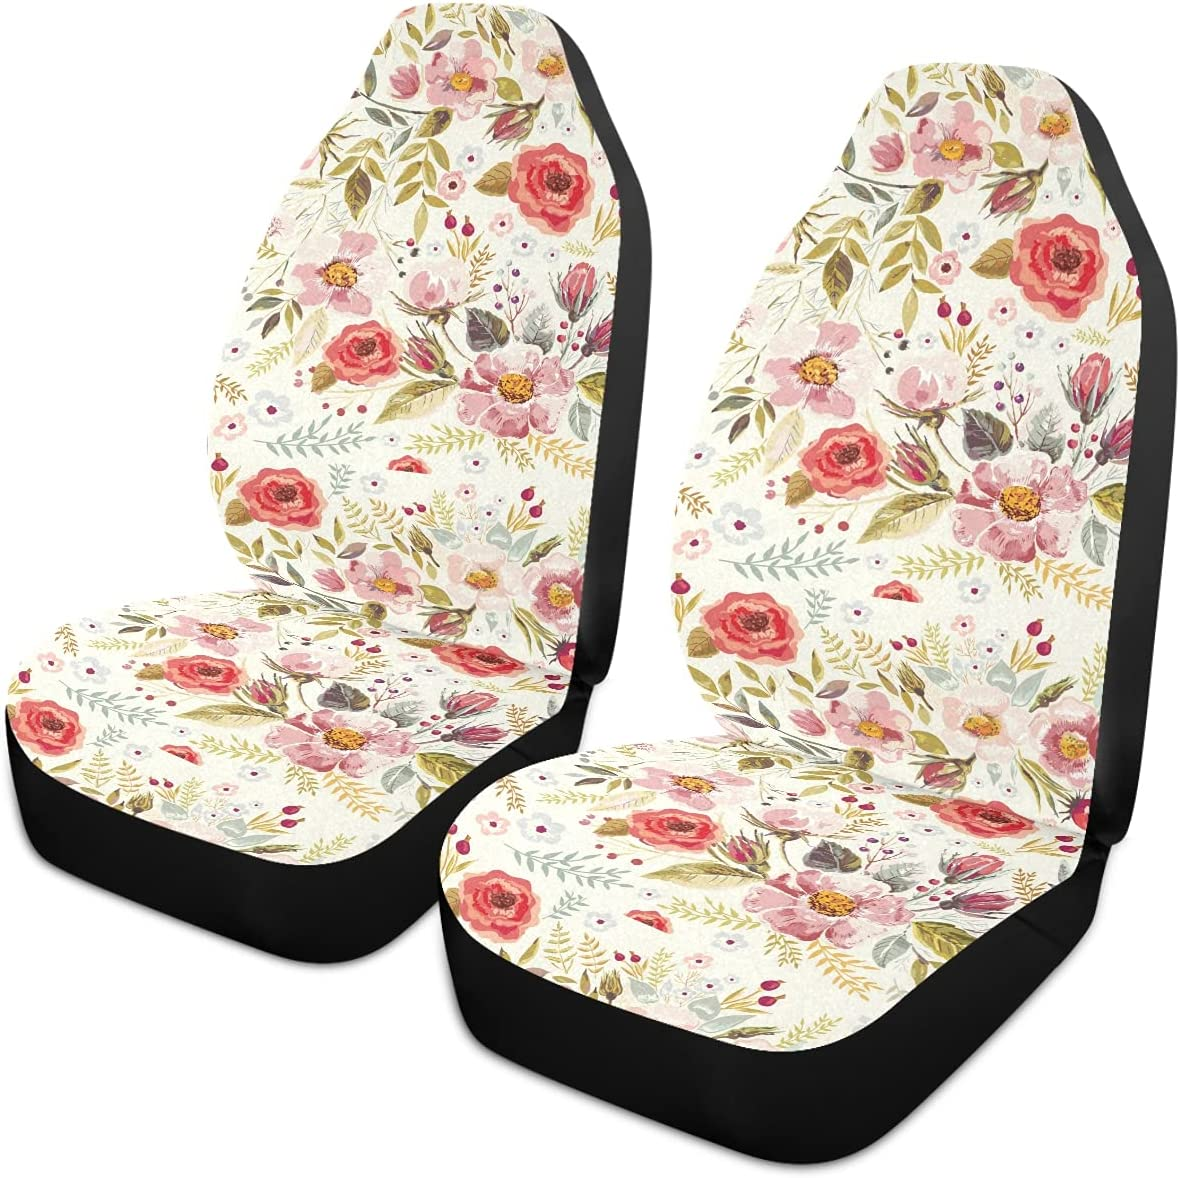 Oarencol Vintage NEW before selling ☆ Flowers Florals Car Discount mail order Covers Seat Auto Universal